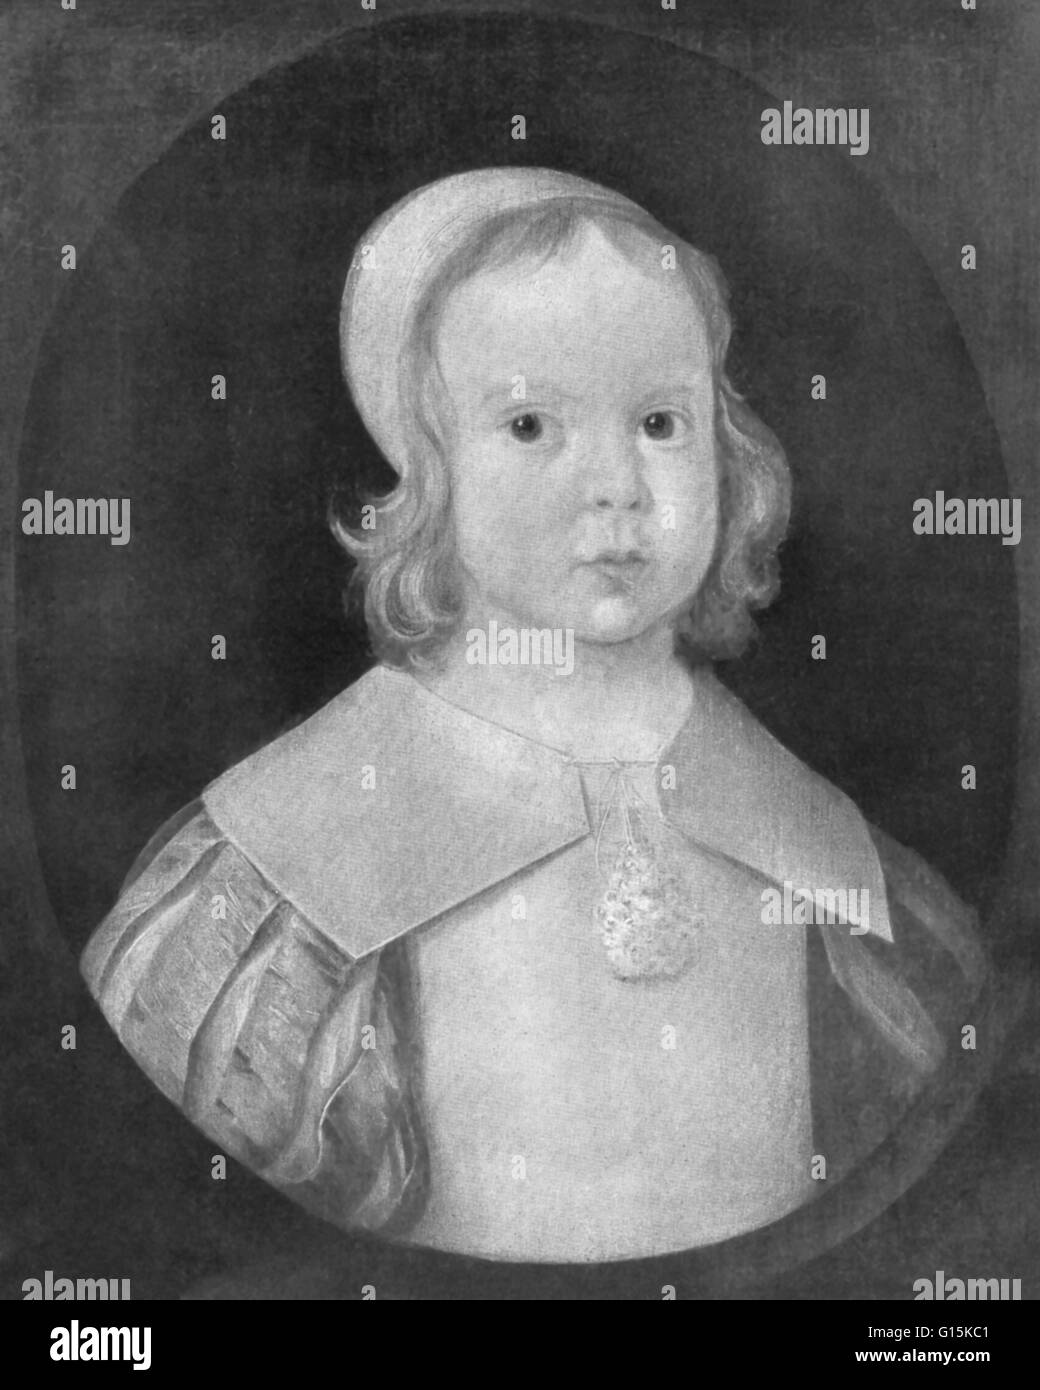 Oliver Cromwell as a two-year-old child. Cromwell (1599-1658) was an English political leader and military commander - Stock Image